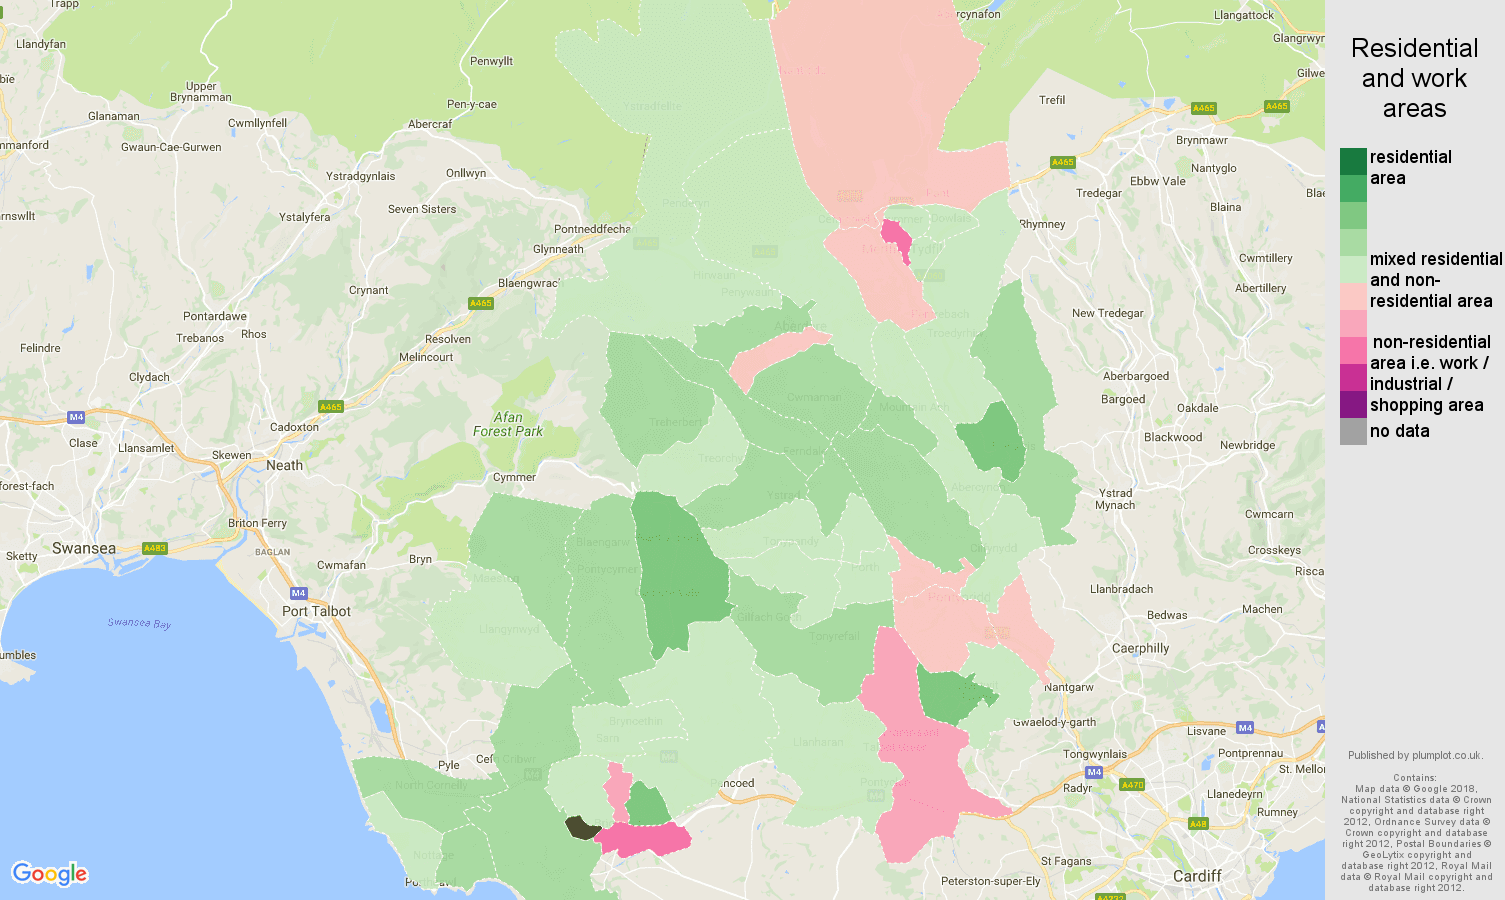 Mid Glamorgan residential areas map